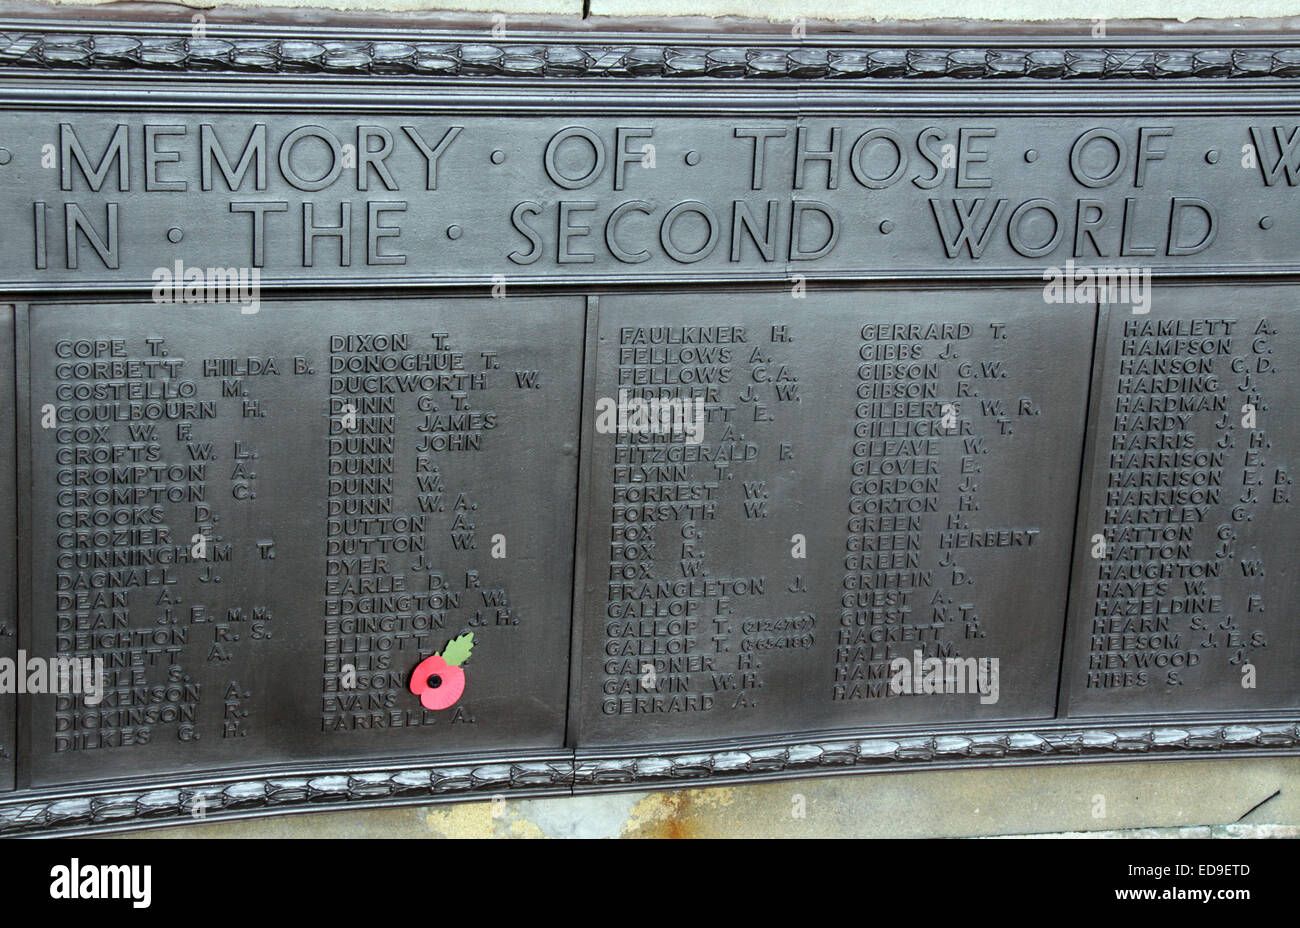 Remembrance day & Poppy Warrington Cenotaph Nov 2014, Bridgefoot, Wilderspool Causeway, Cheshire, England, UK - Stock Image